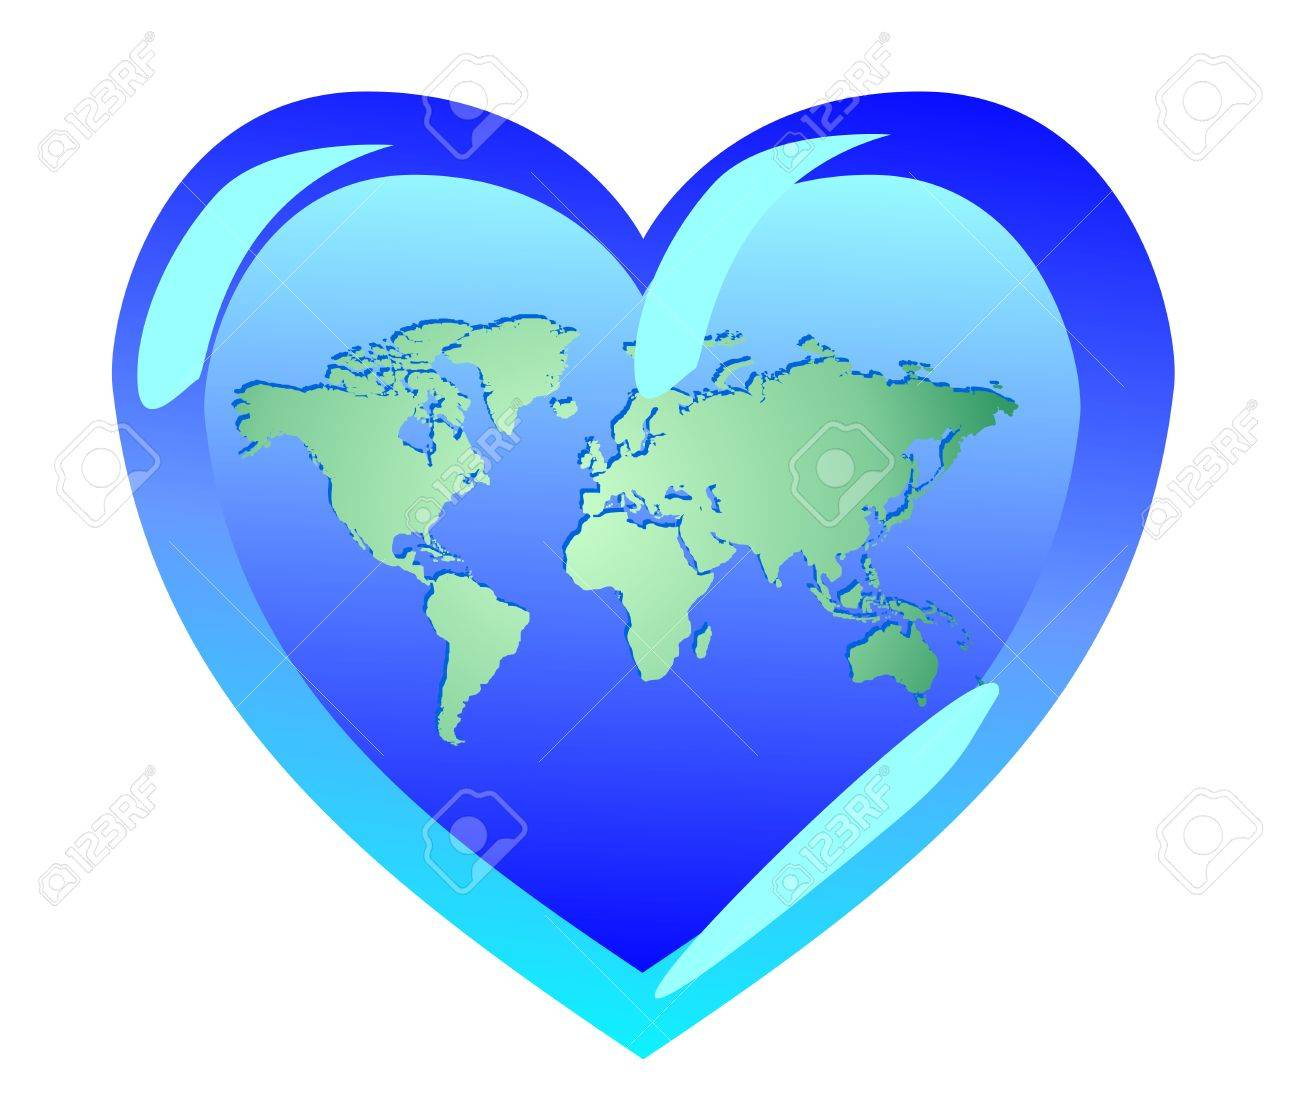 Earth in the form of heart the world is love symbols of pacifism earth in the form of heart the world is love symbols of pacifism buycottarizona Gallery